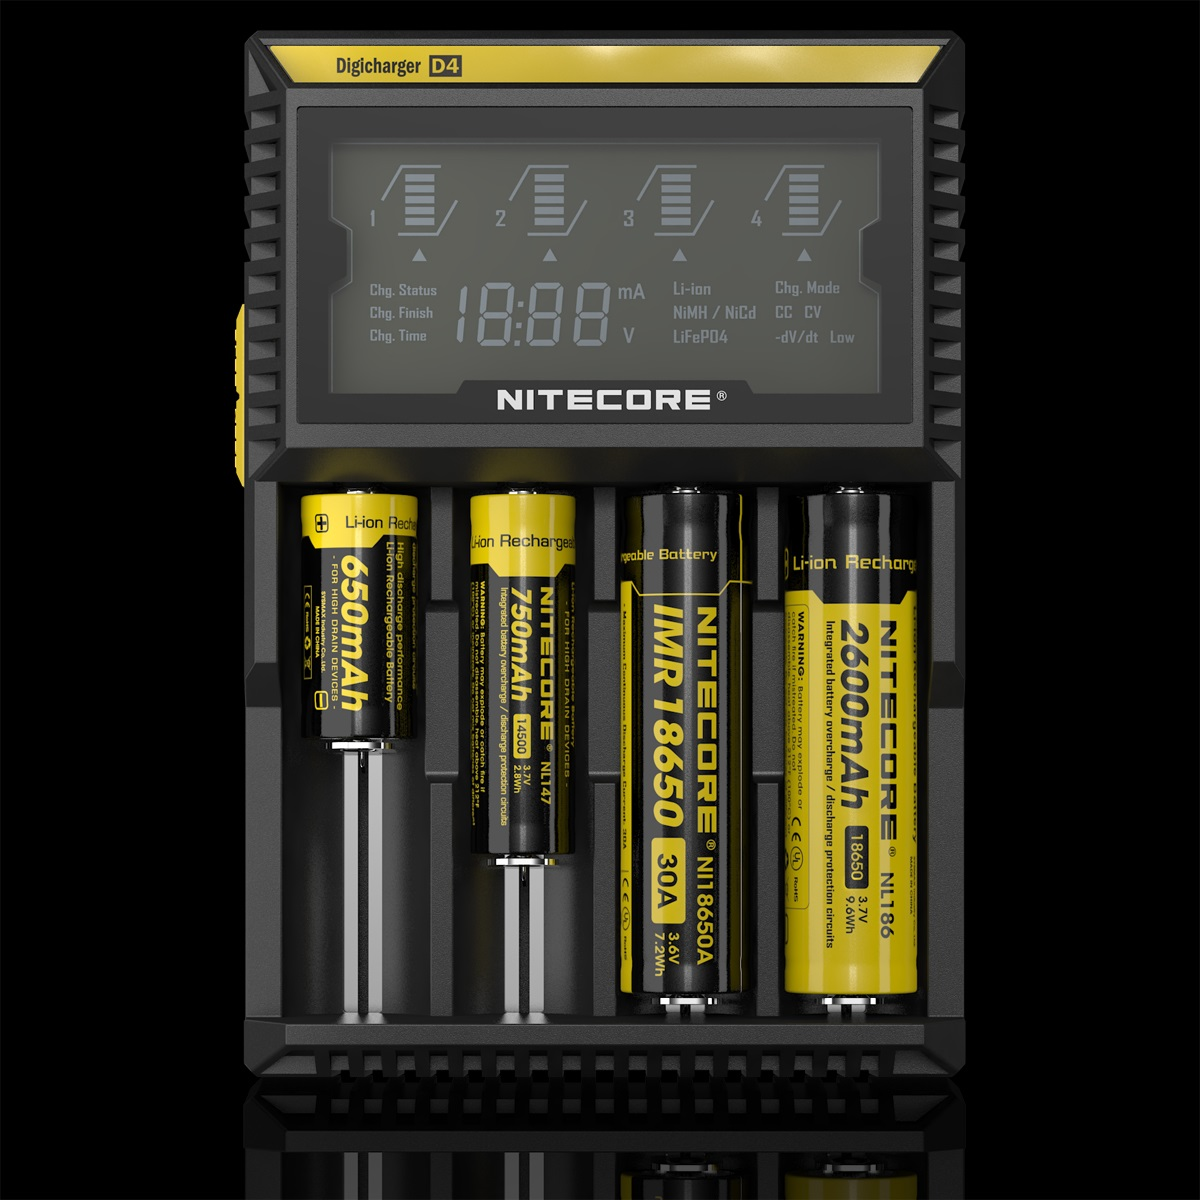 Nitecore Digicharger D4 MultiinOne Battery Charger